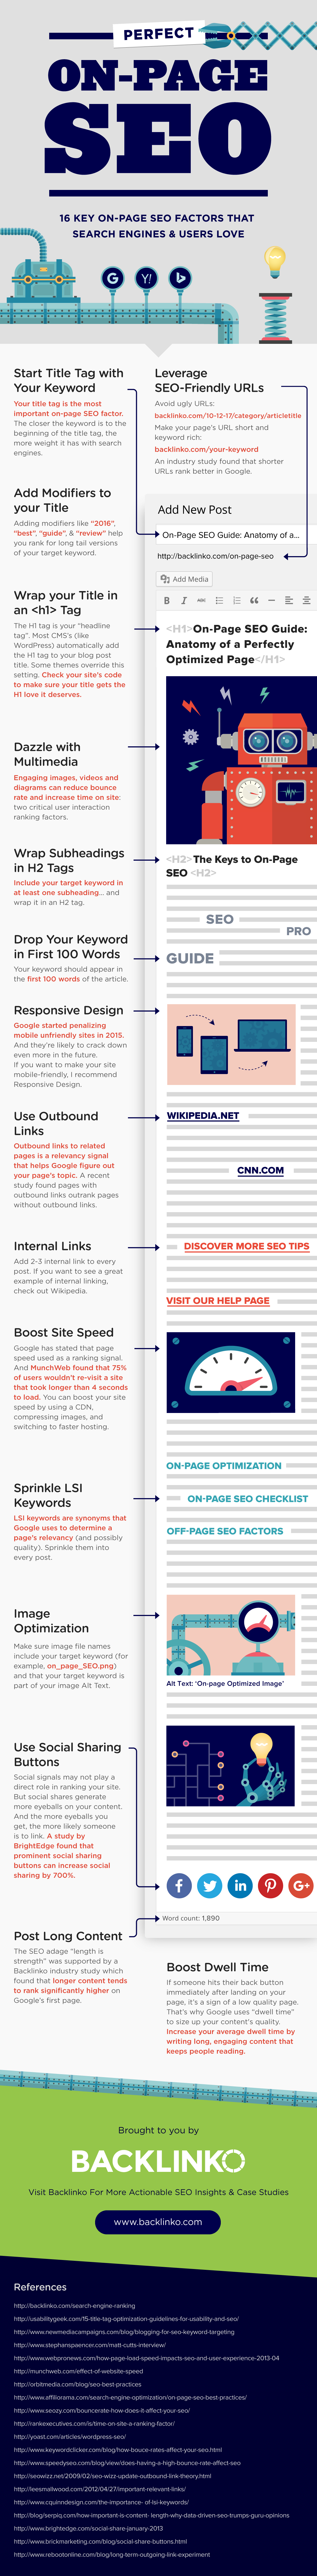 on-page-seo-infographic